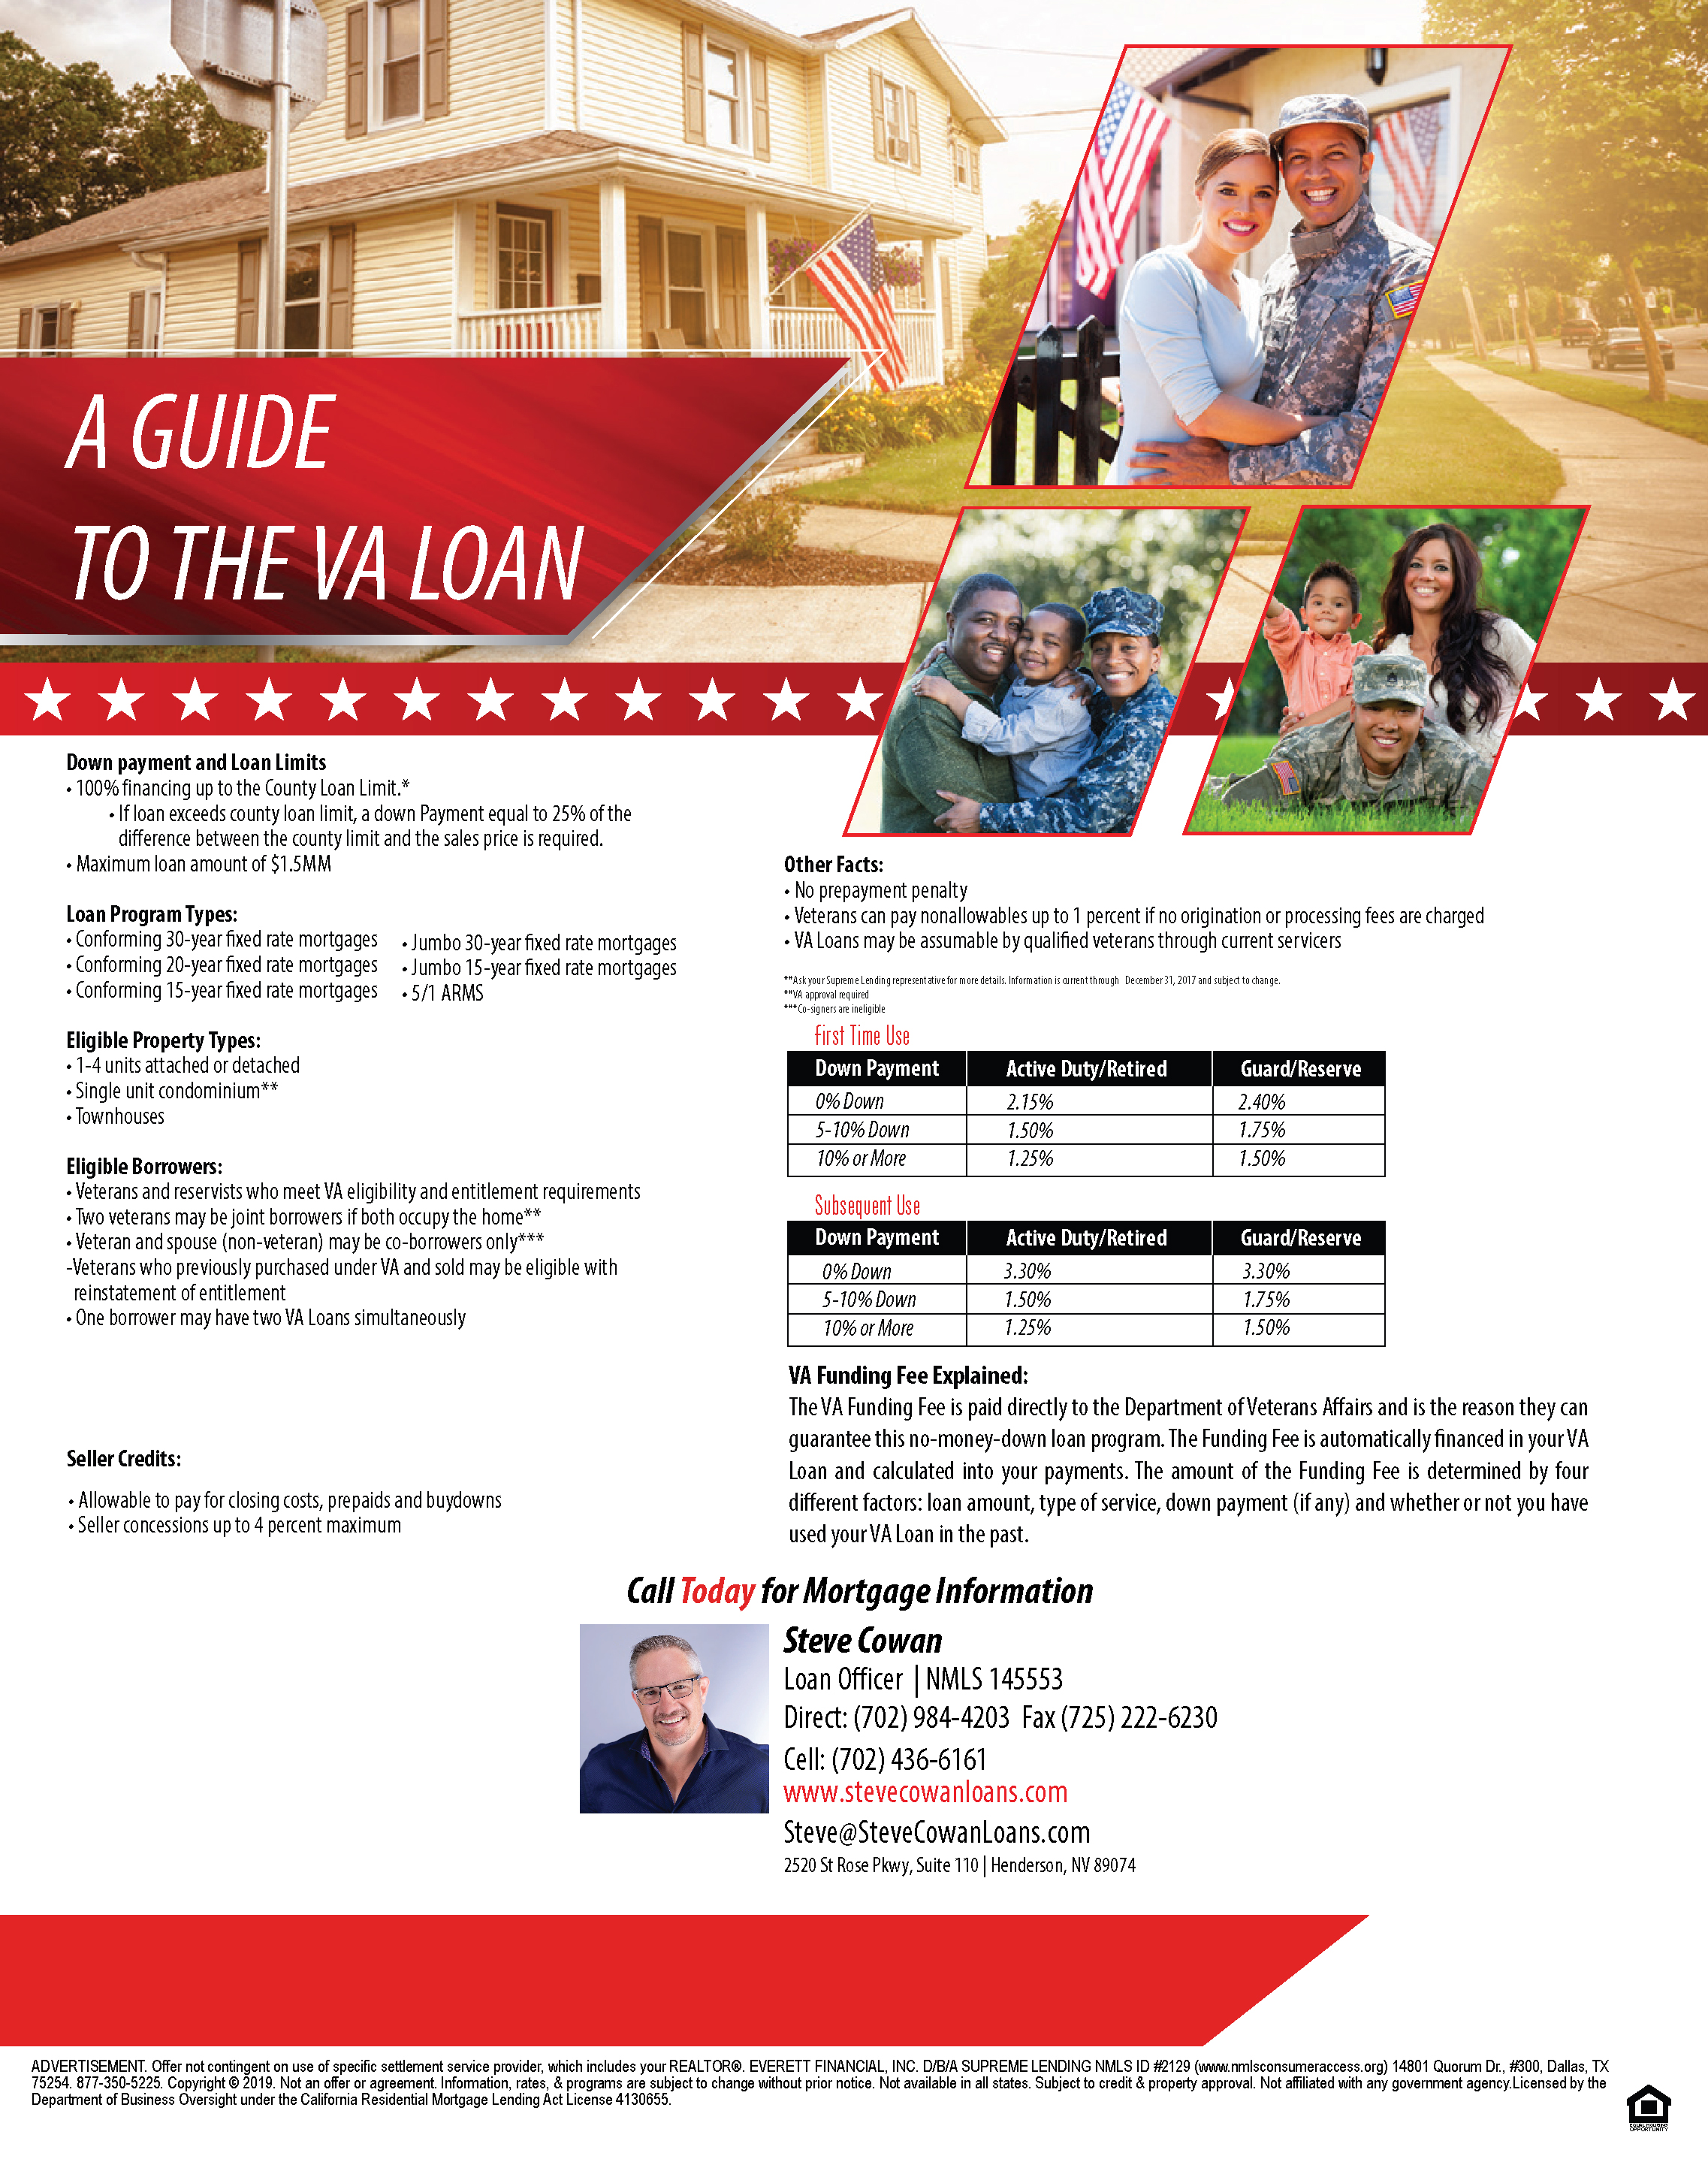 A-Guide-To-The-VA-Loan-1.jpg